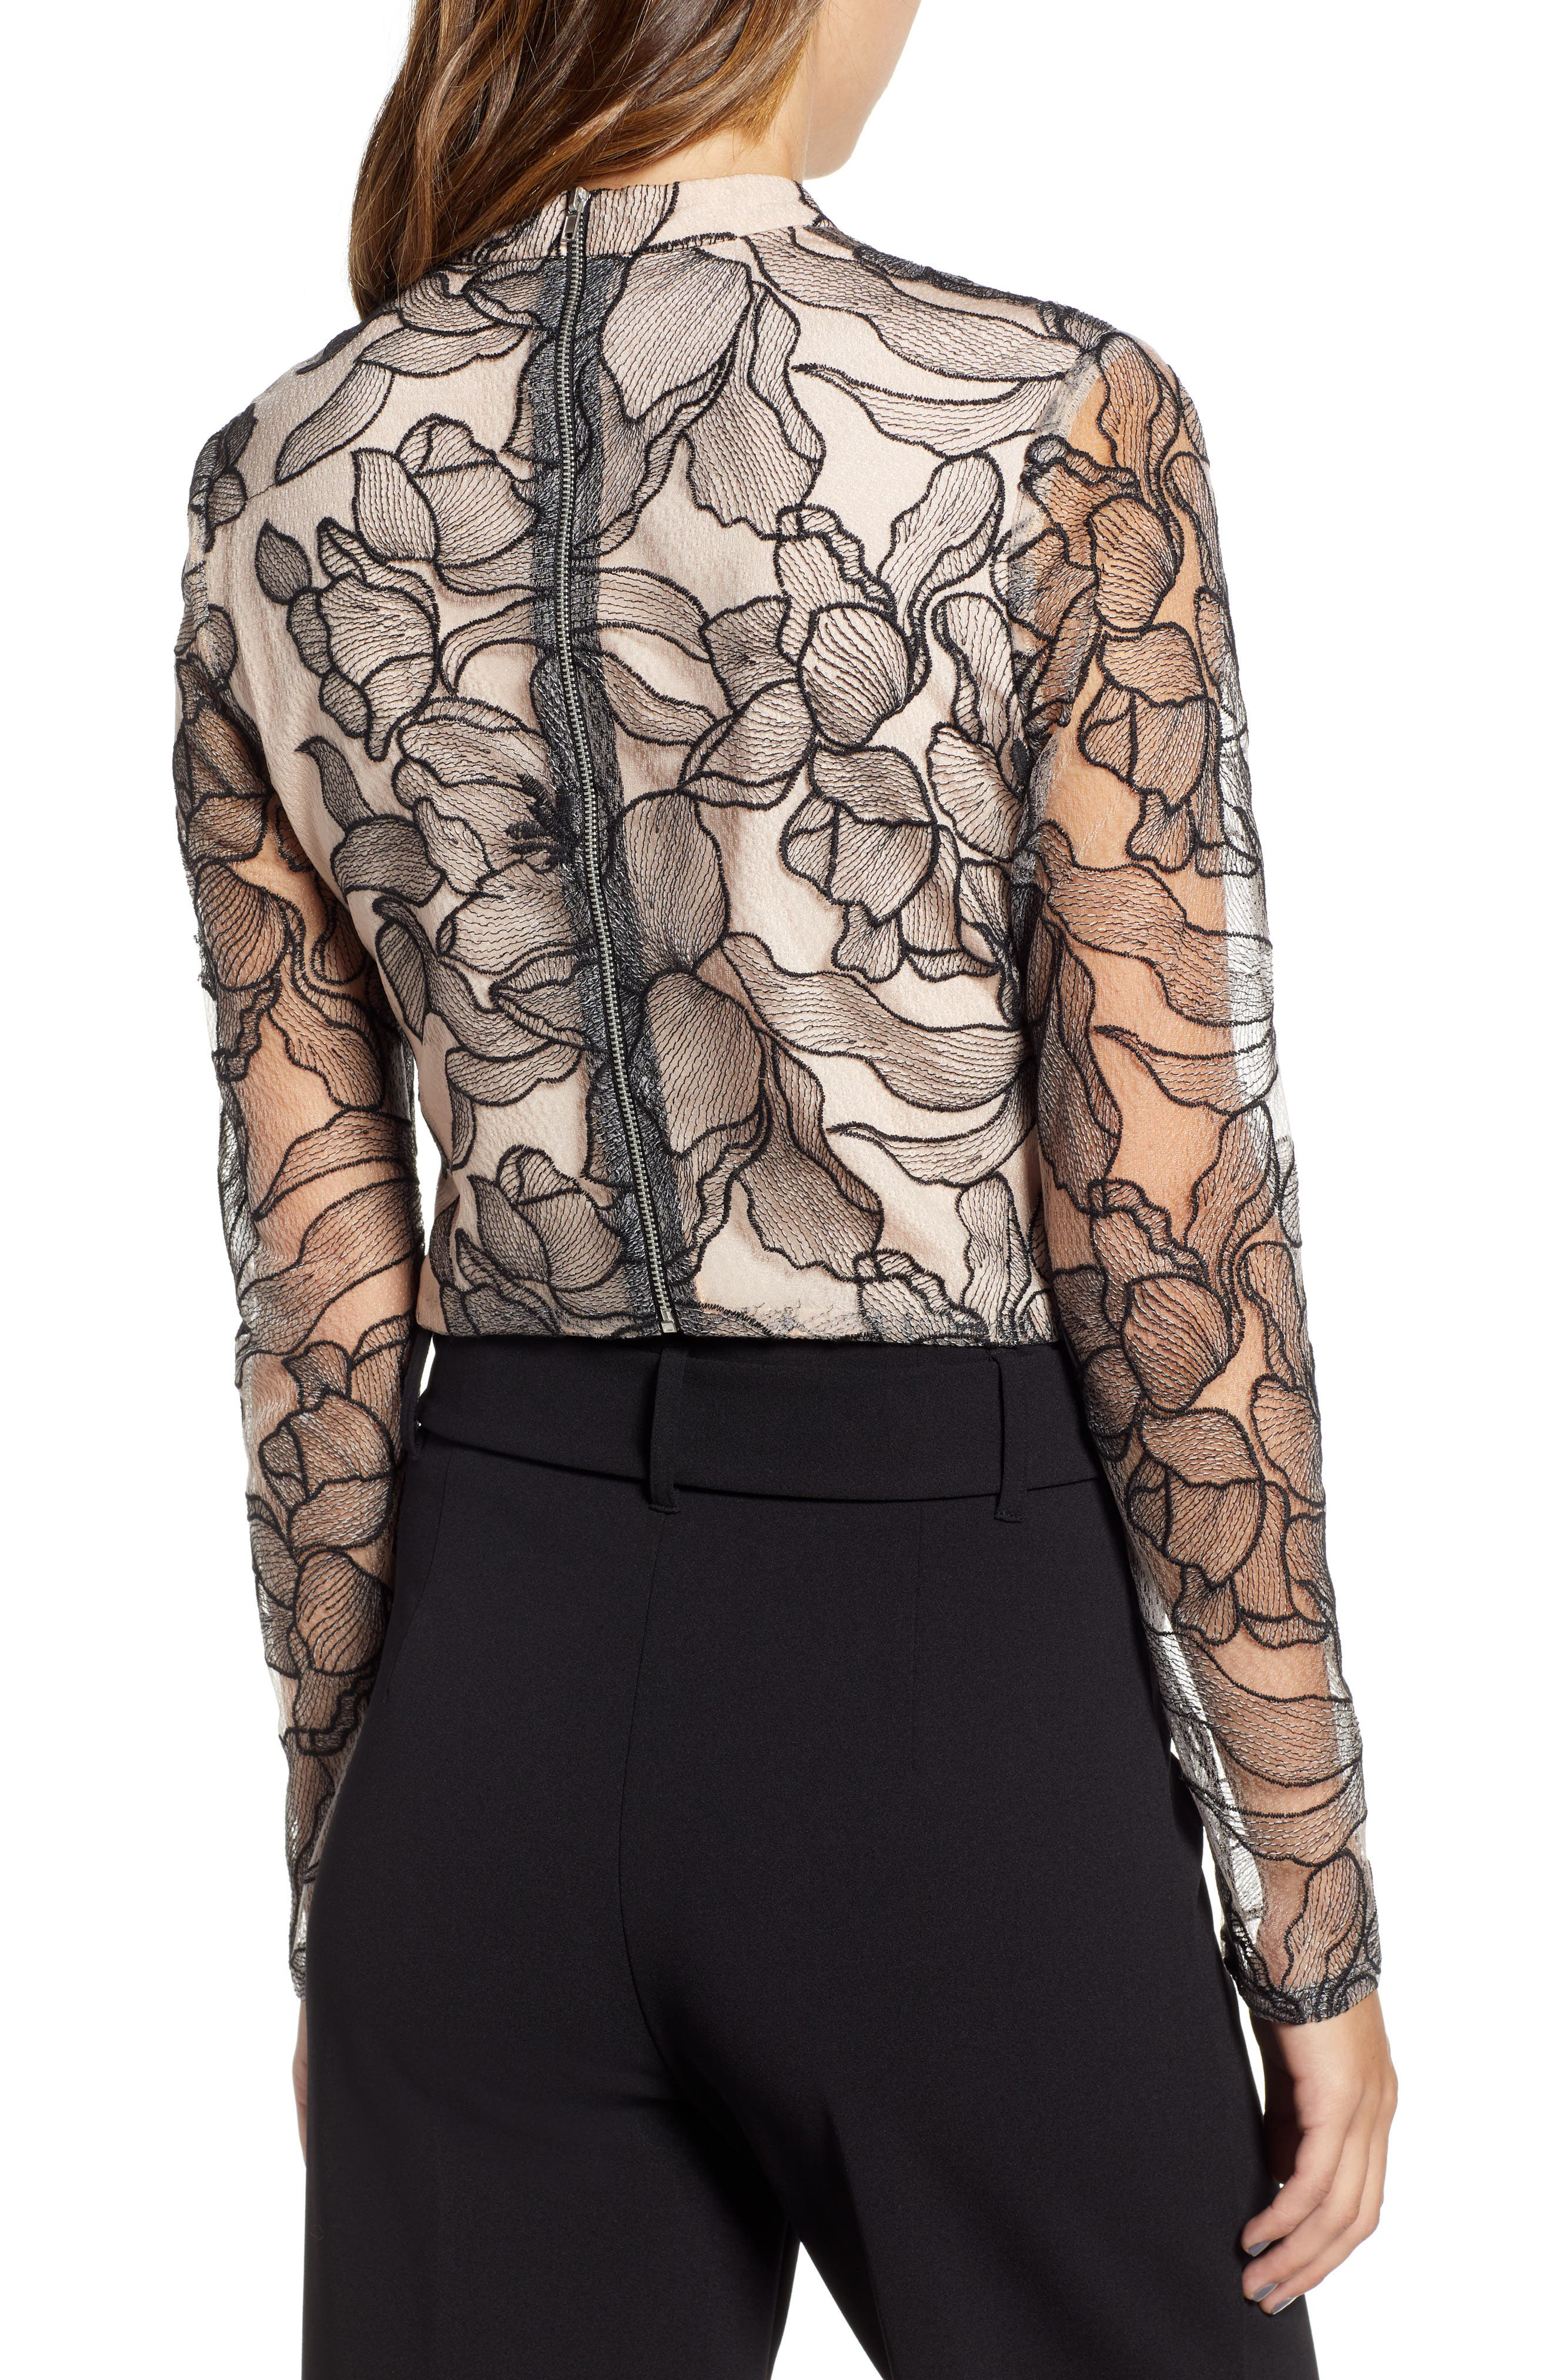 Mina Cropped Lace Top,                             Alternate thumbnail 2, color,                             BLACK NUDE LACE